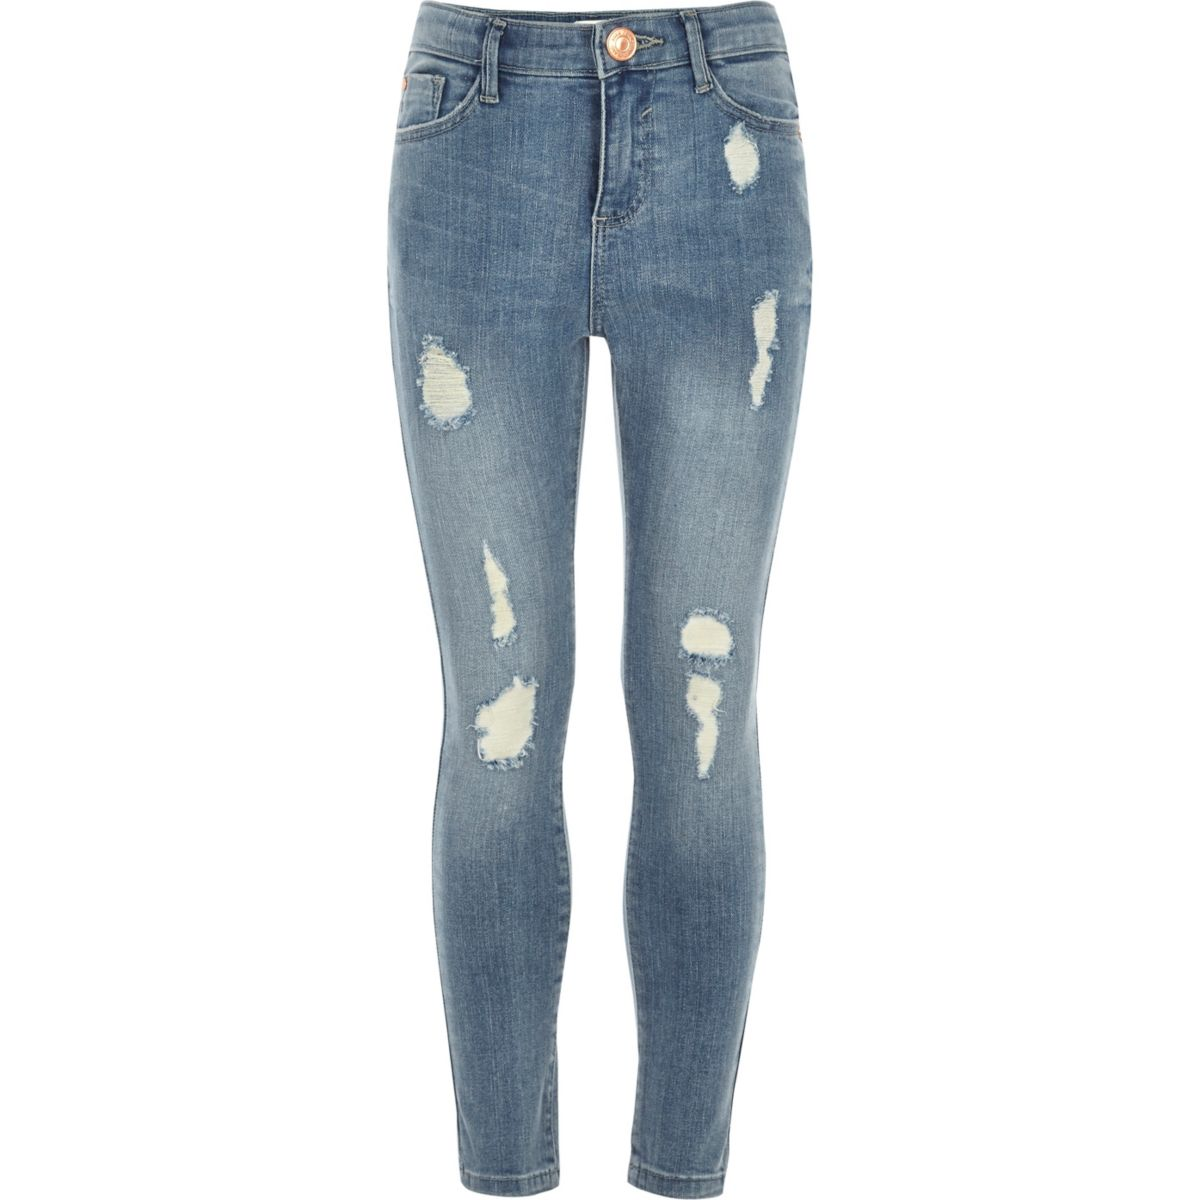 Girls blue ripped Amelie super skinny jeans - Skinny Jeans - Jeans - girls